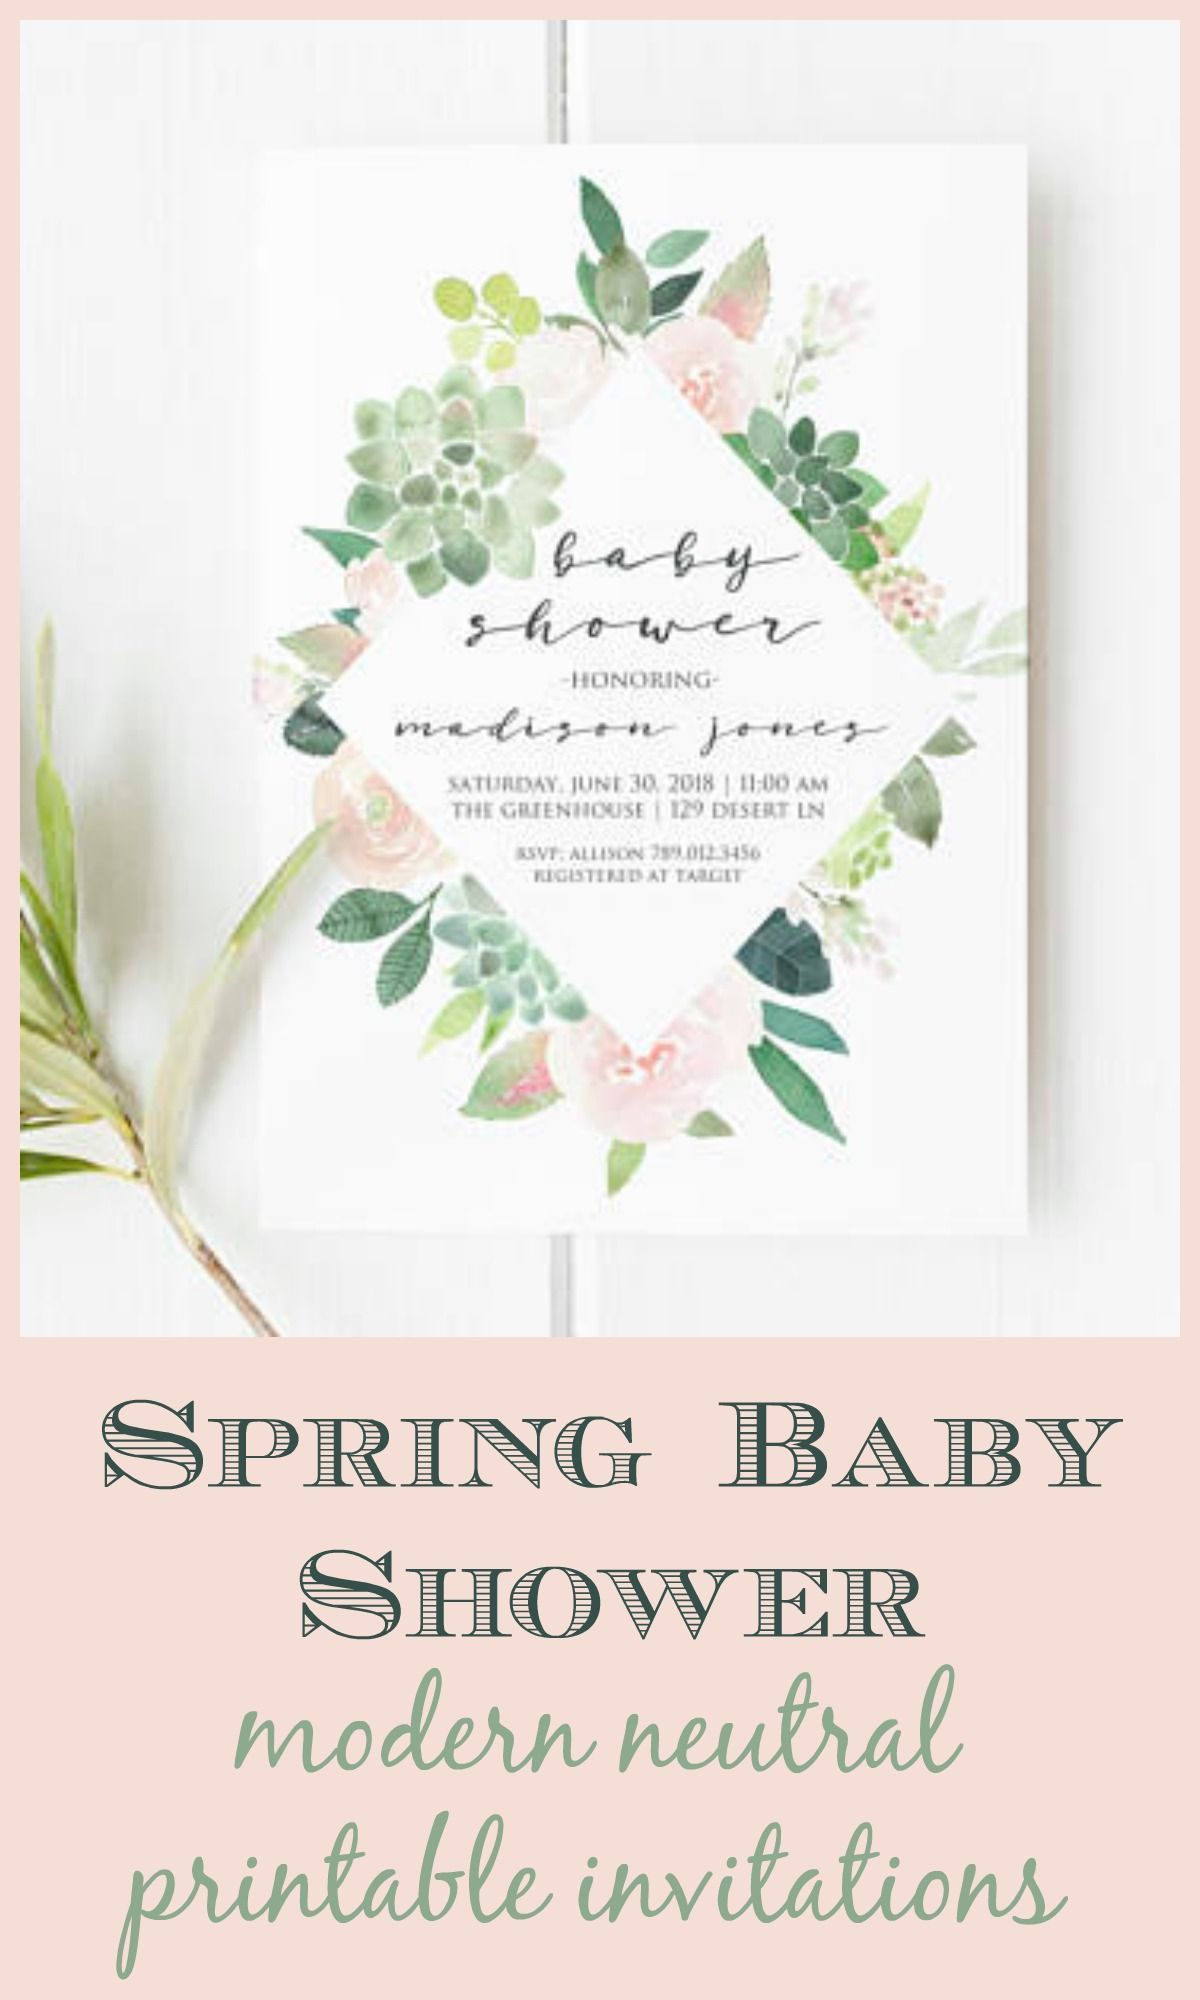 simple modern invitation for a gender neutral spring baby